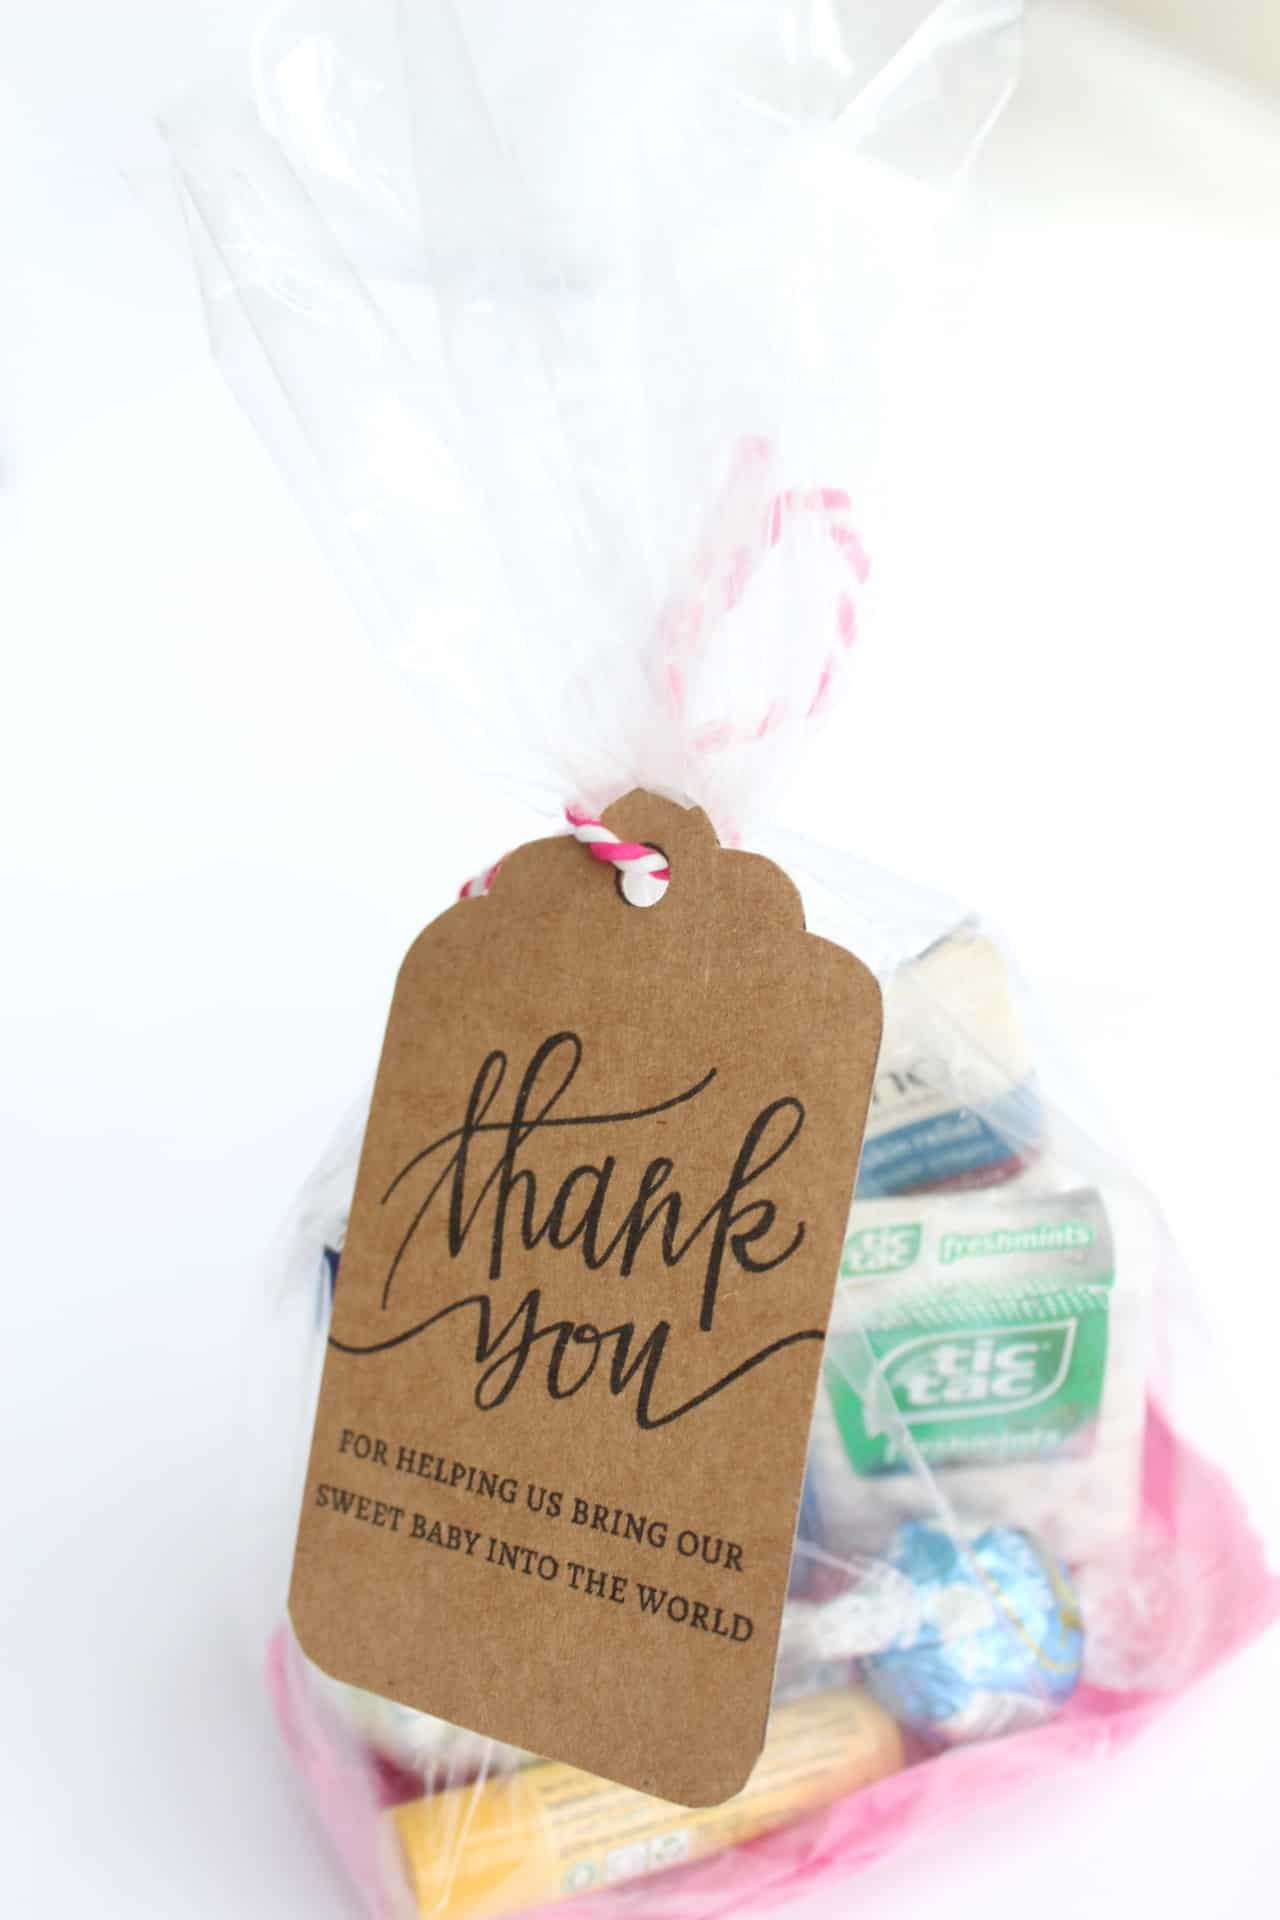 thank you gifts for labor and delivery nurses or midwives